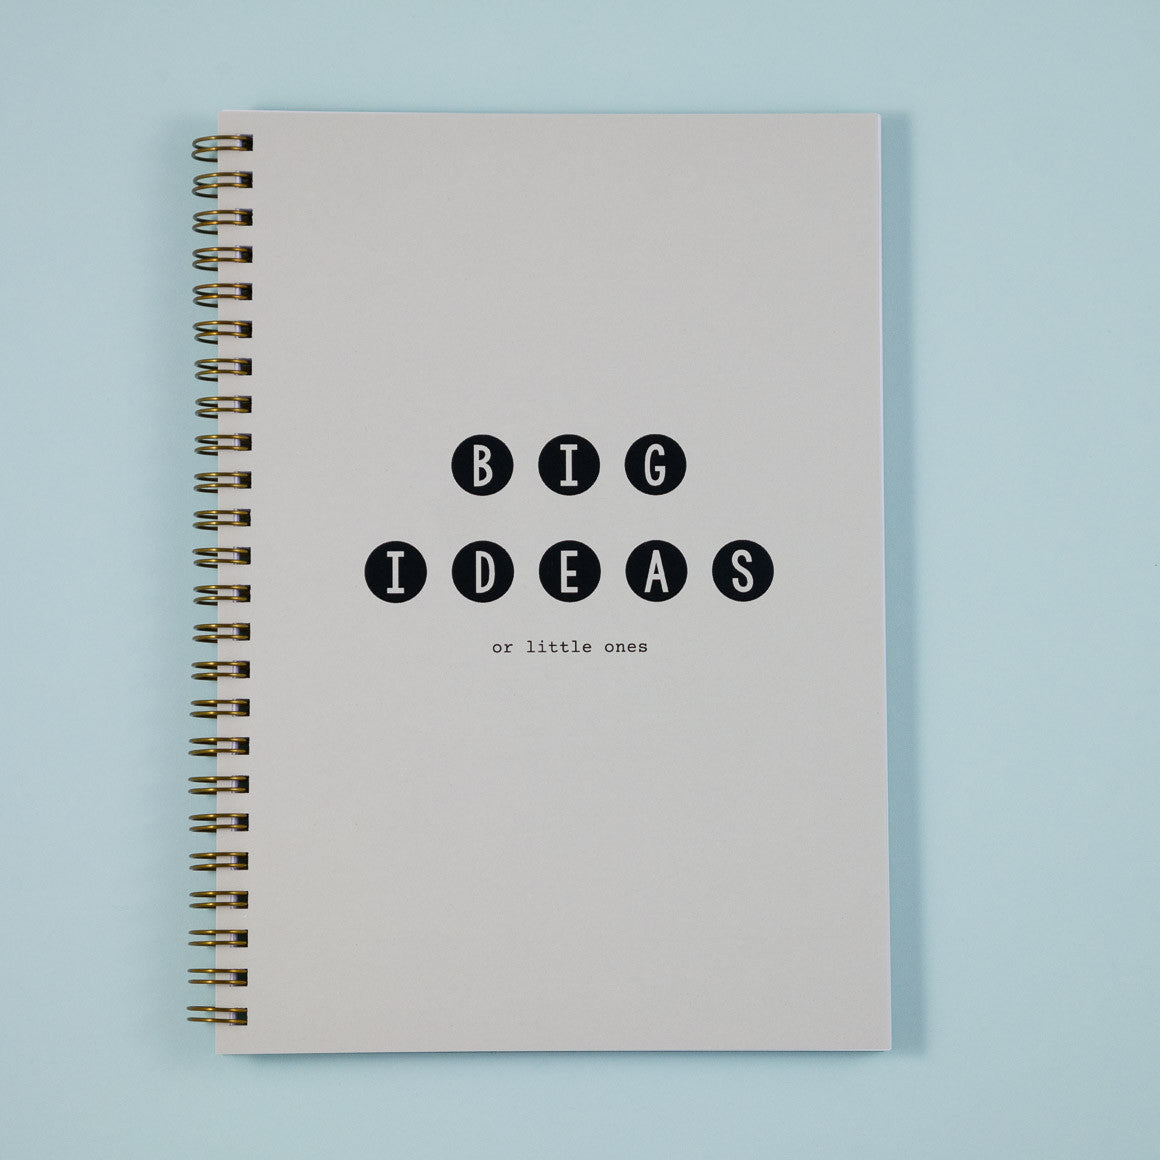 big ideas A5 notebook